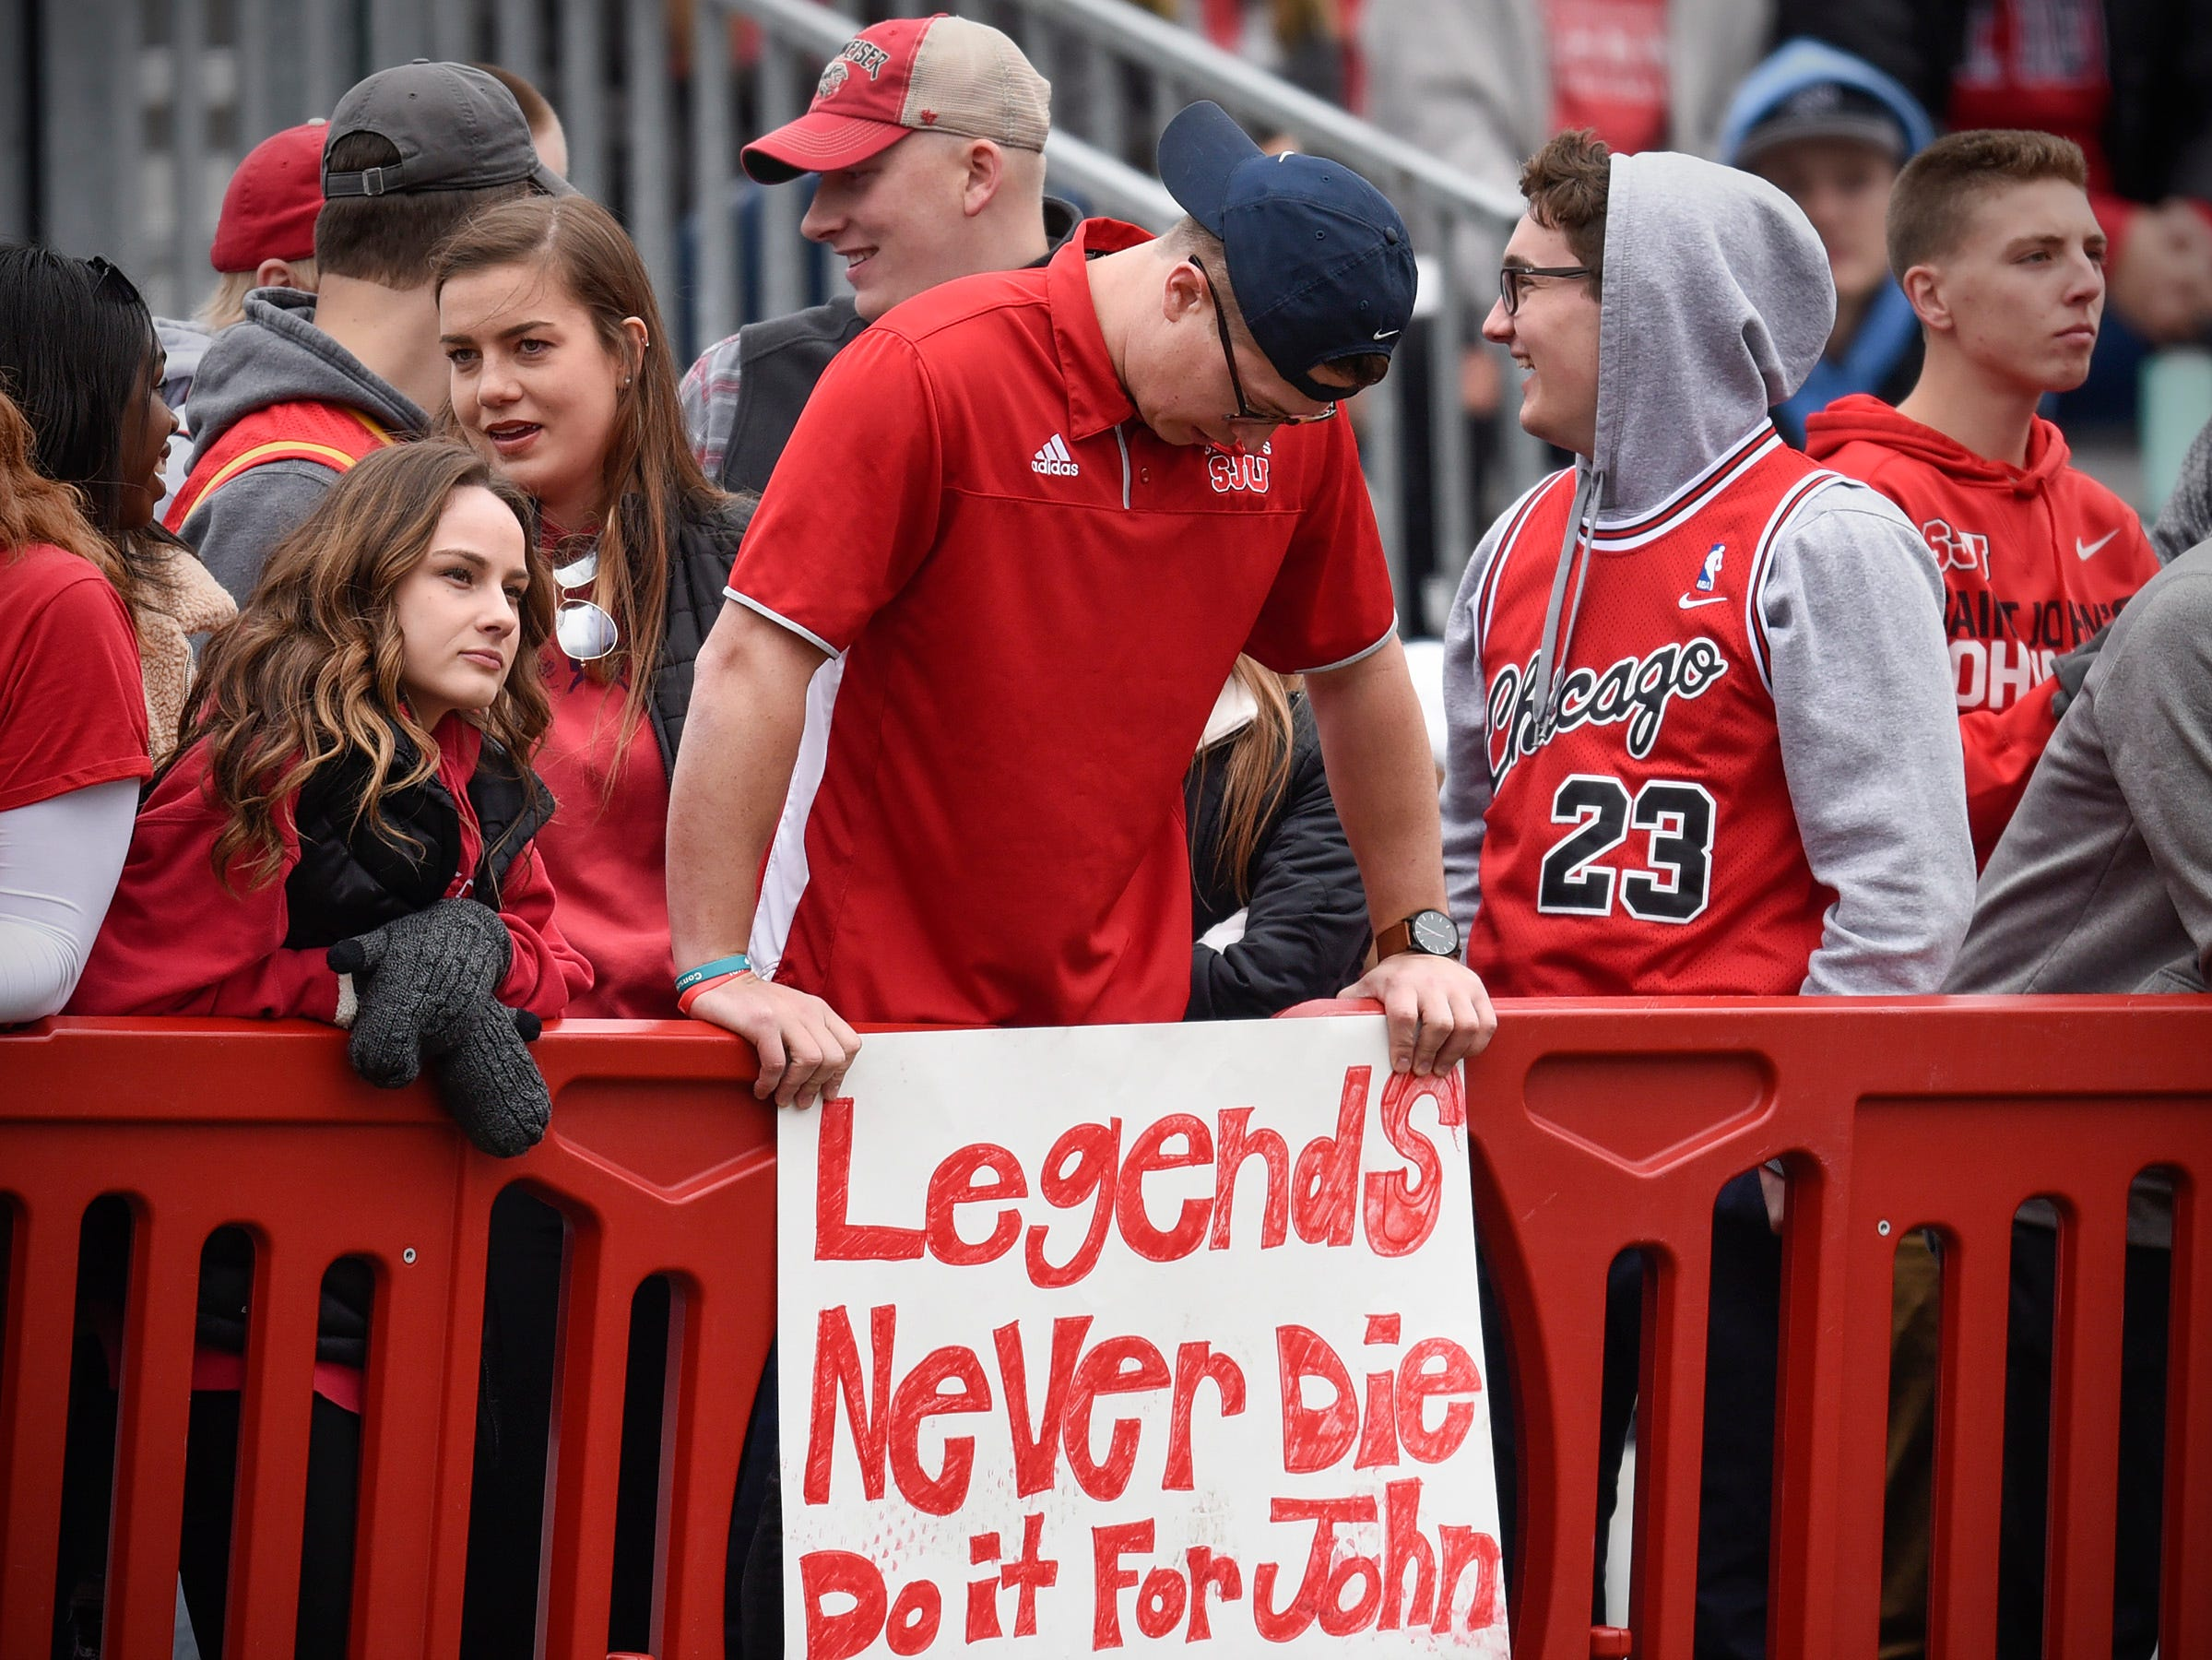 Students in the St. John's student section remember John Gagliardi Saturday, Oct. 13, in Collegeville.